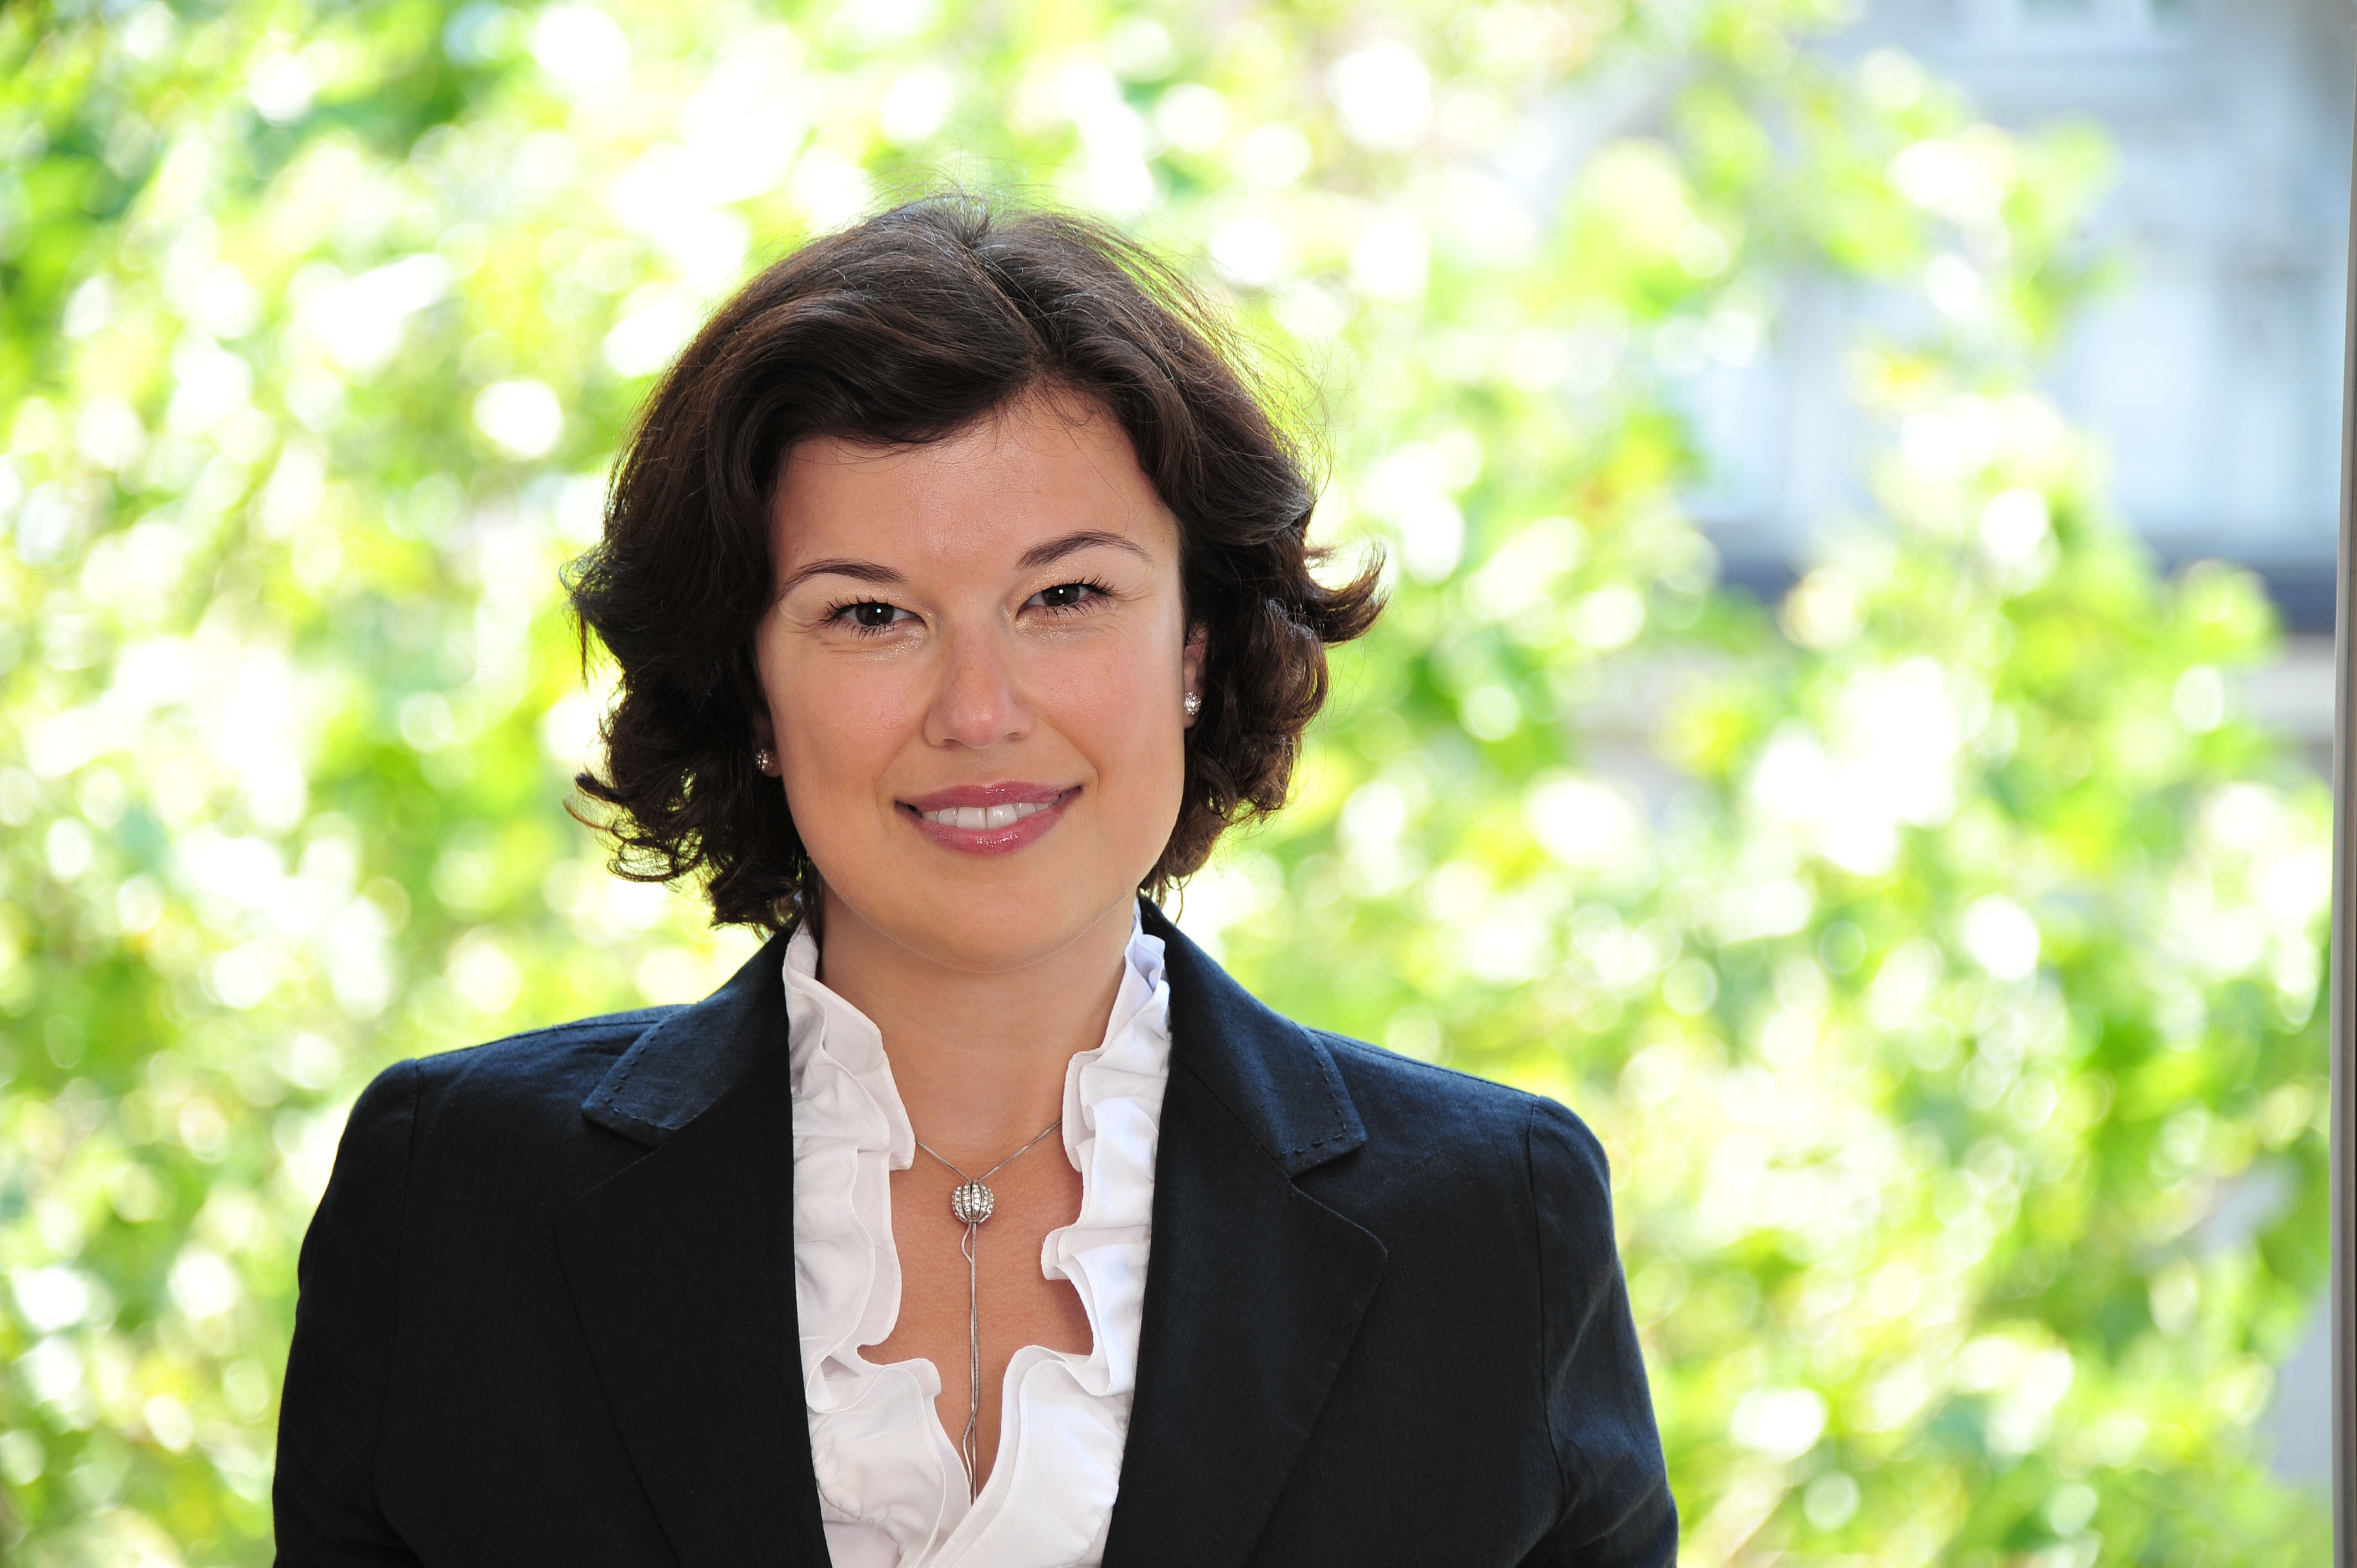 Alexandra Mihailescu Cichon, Head of sales and marketing at RepRisk (Photo: Business Wire)